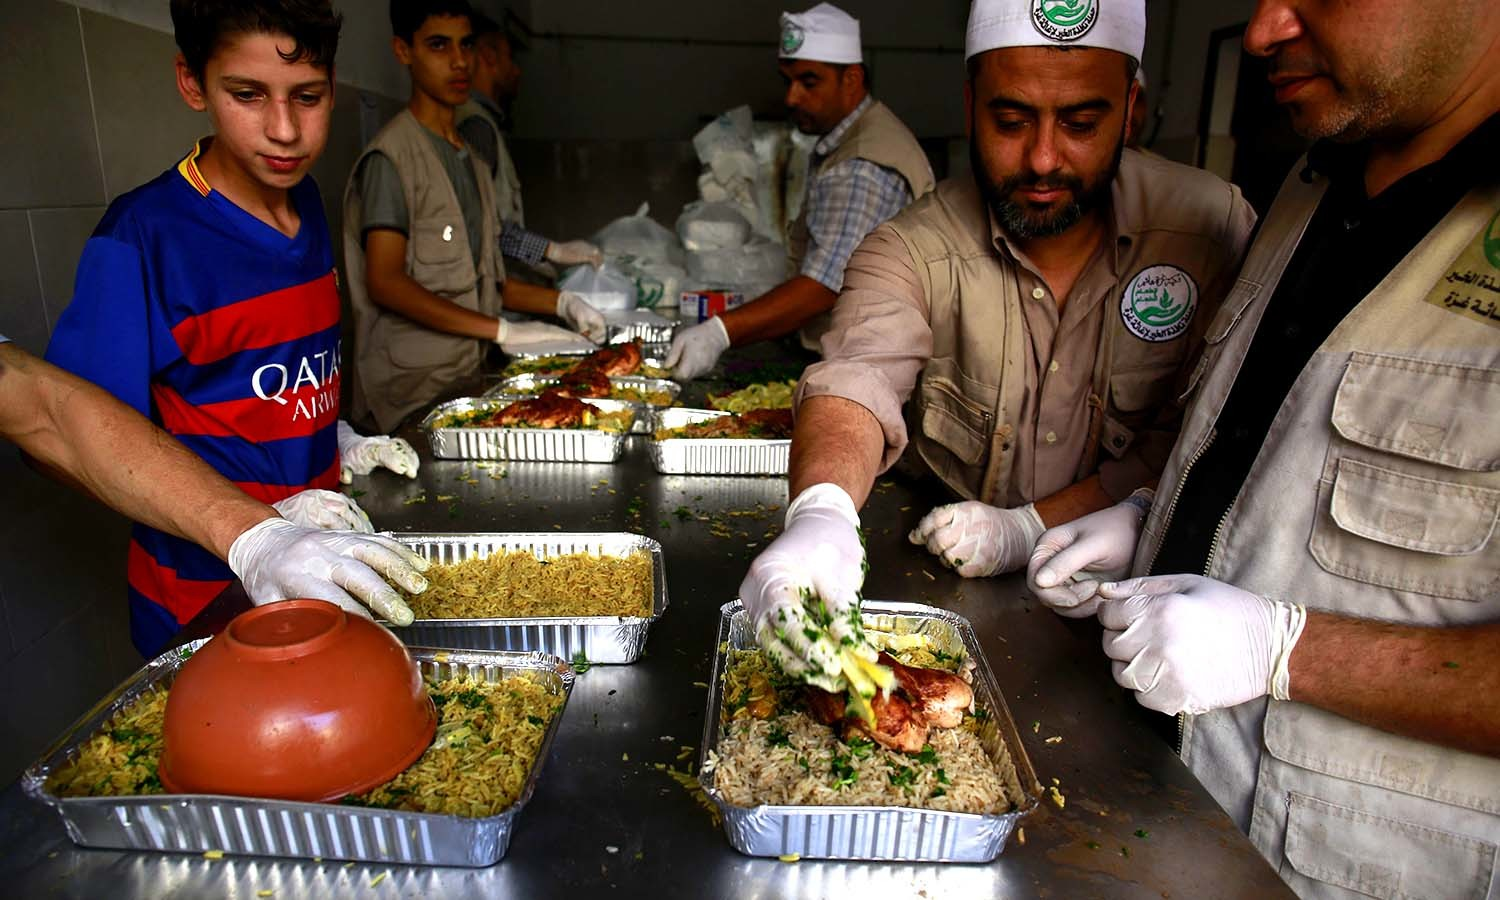 Soup Kitchen Meal Ramazan Soup Kitchen Offers Brief Respite To Gazas Hungry World